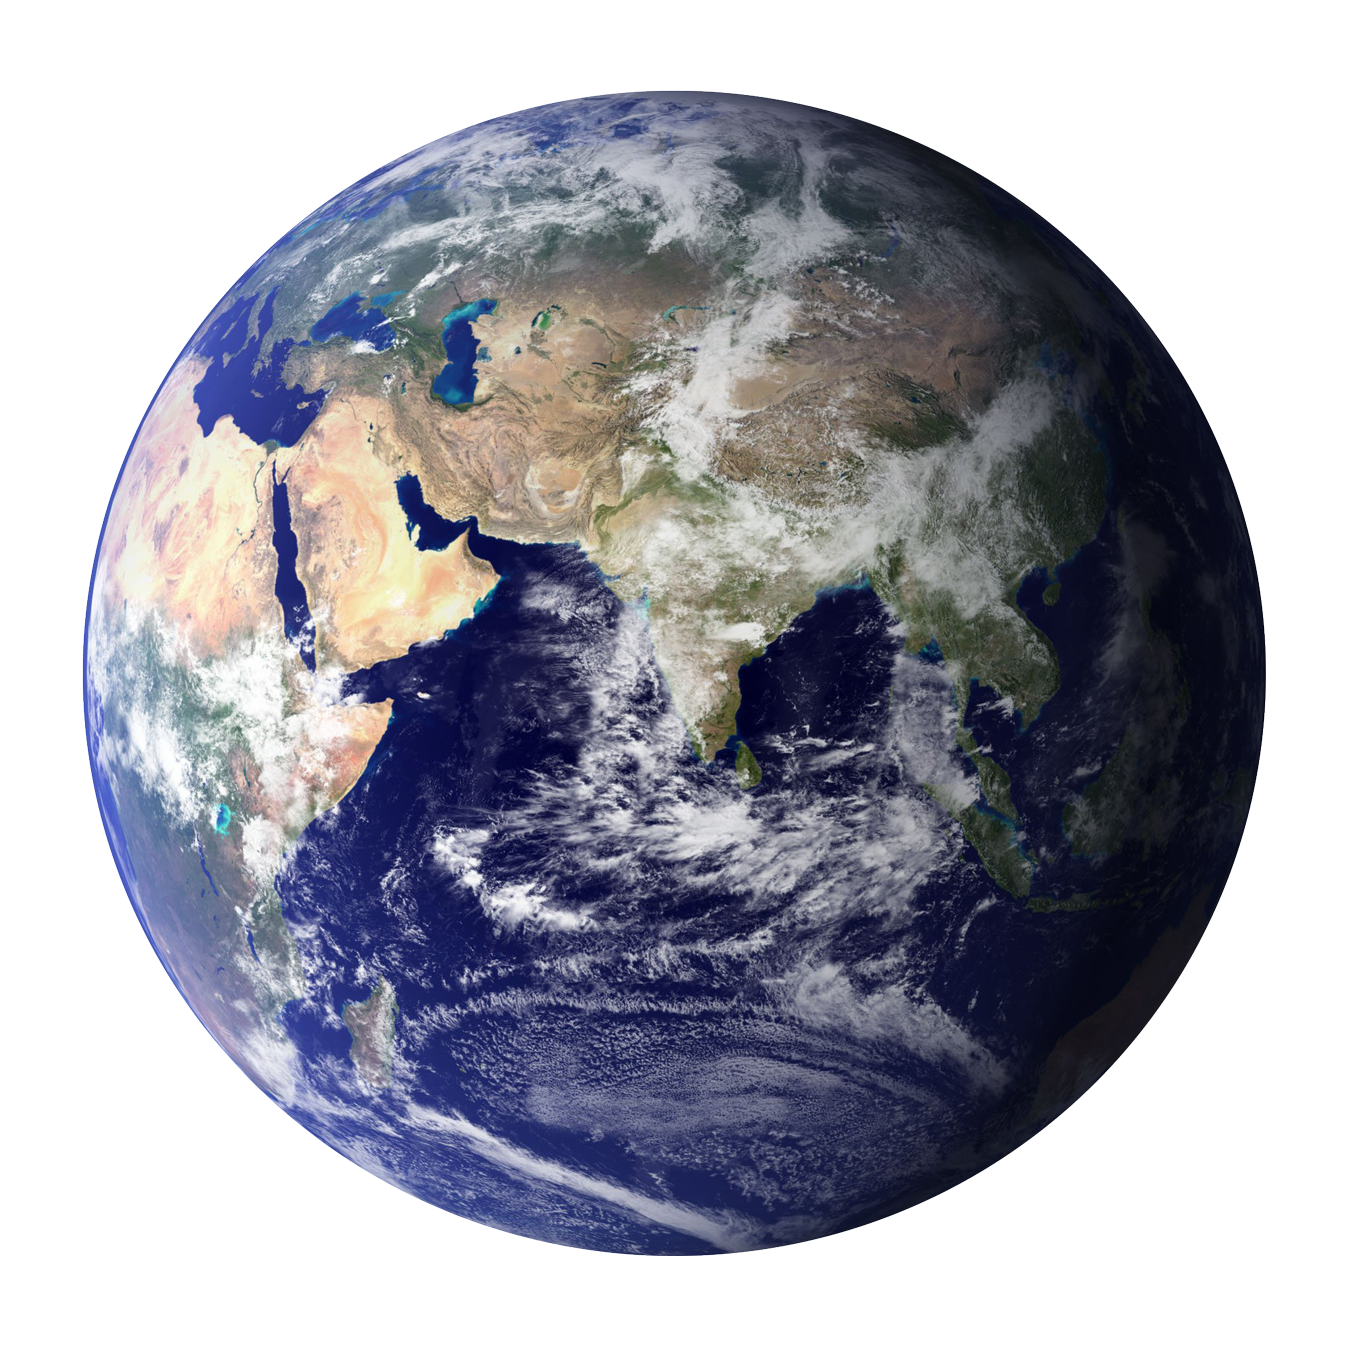 Planet globe png image. Clipart world atmosphere earth